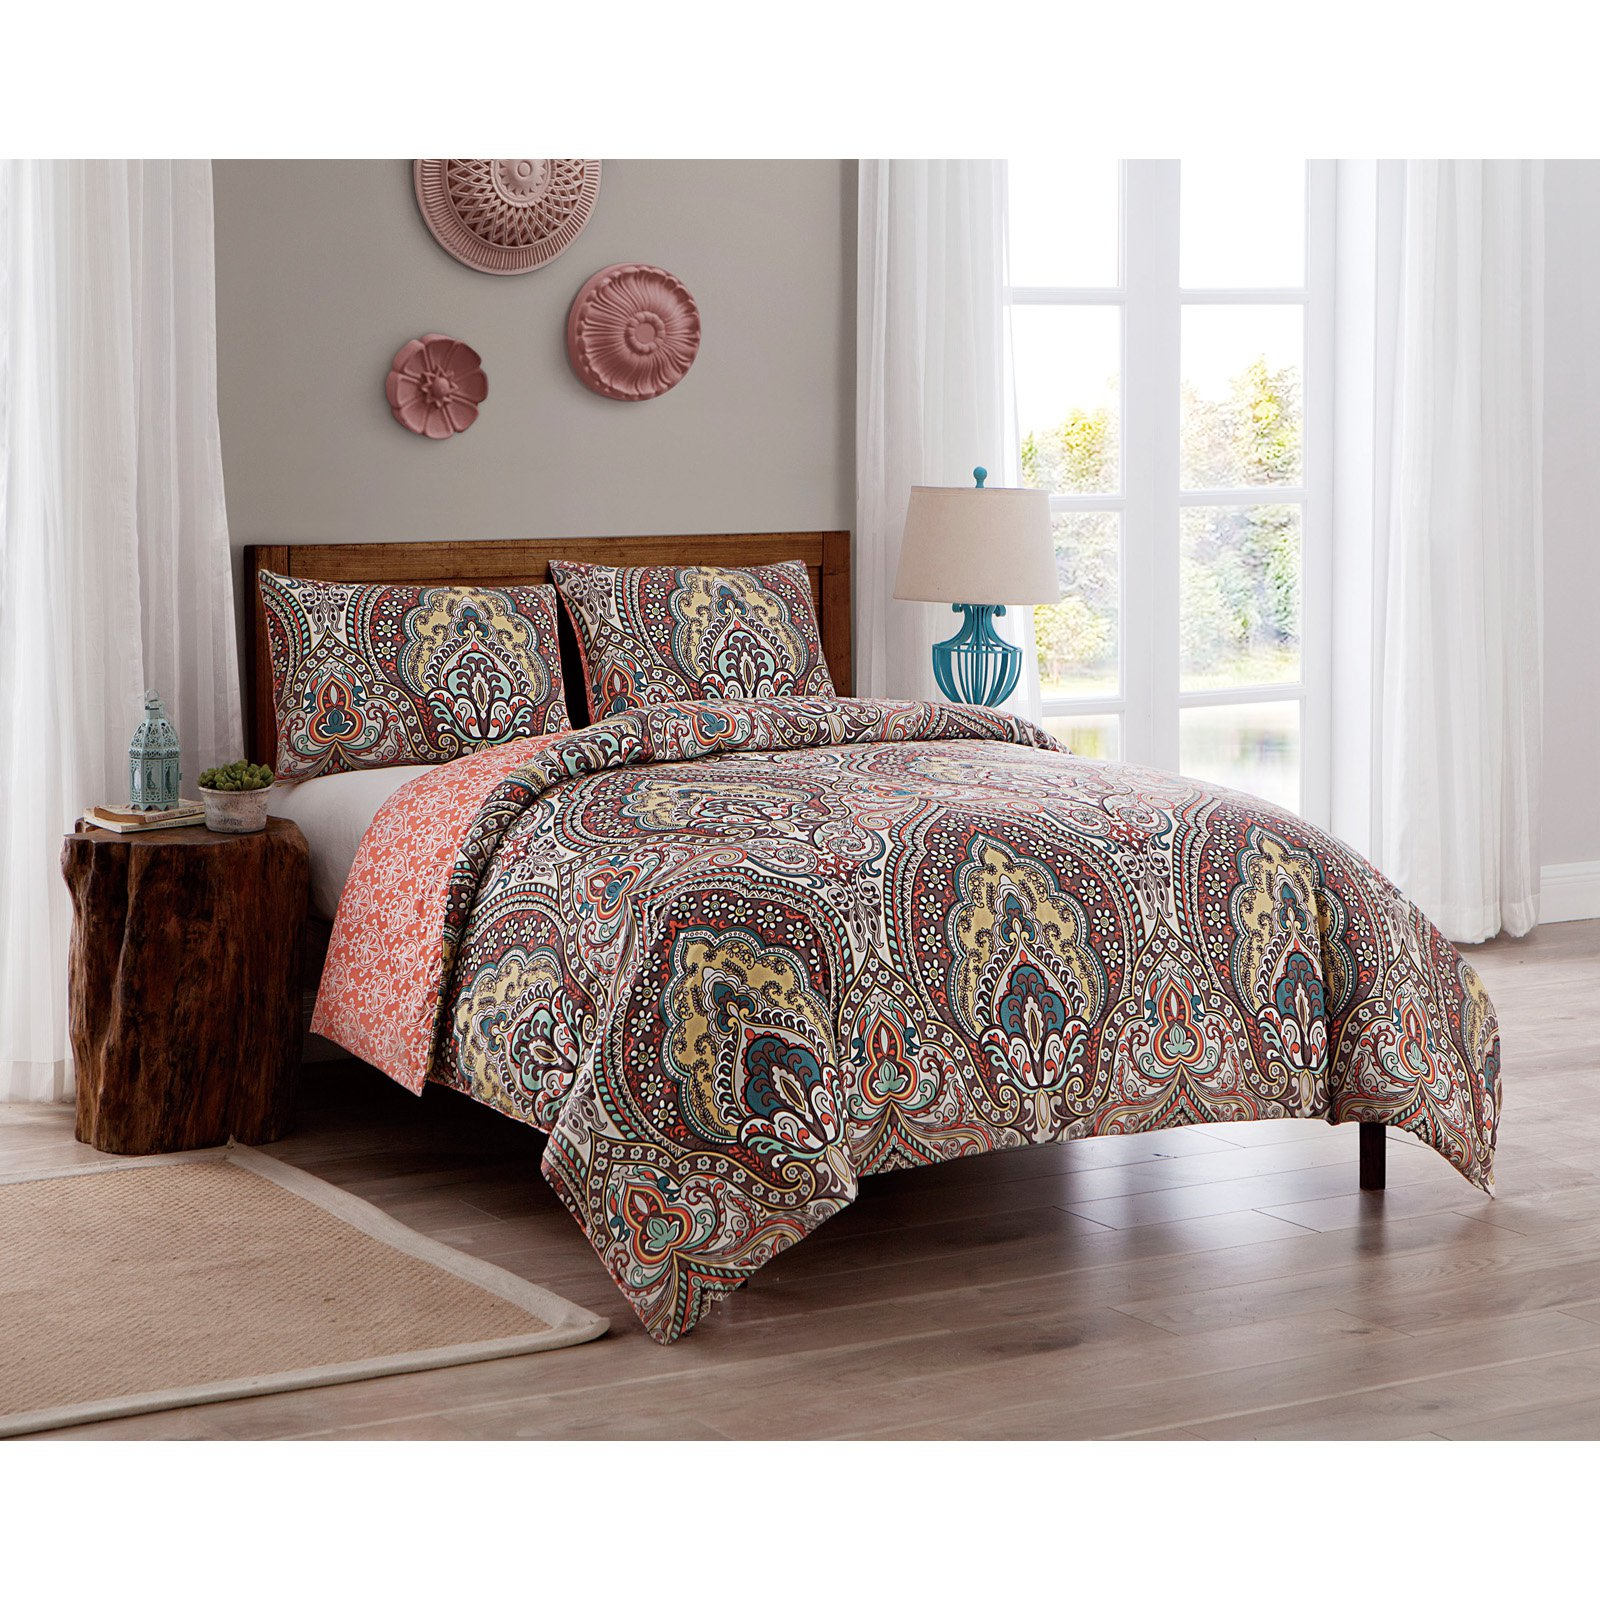 VCNY Home Palaci Damask Printed 2/3 Piece Duvet Cover Bedding Set, Shams Included